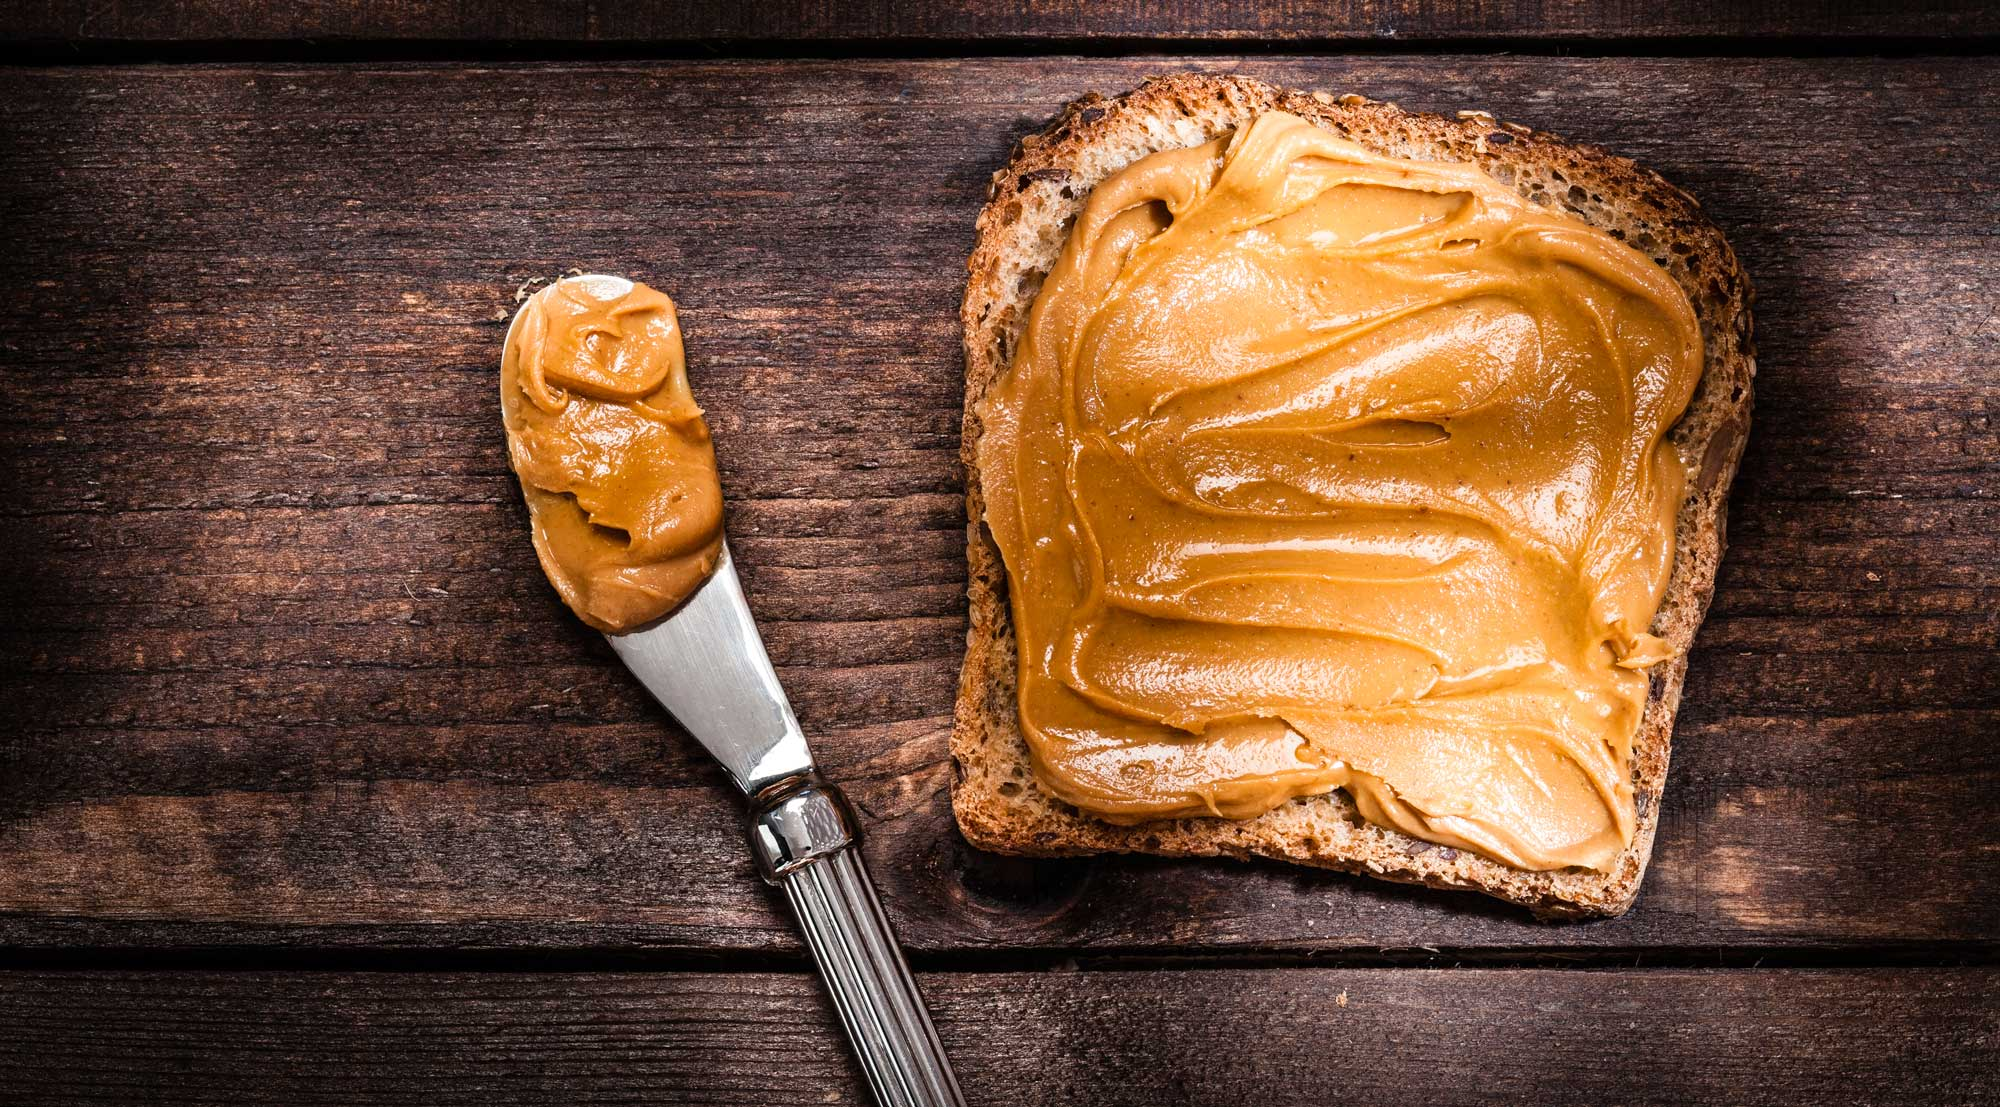 Overview of Can peanut butter affect weight gain?